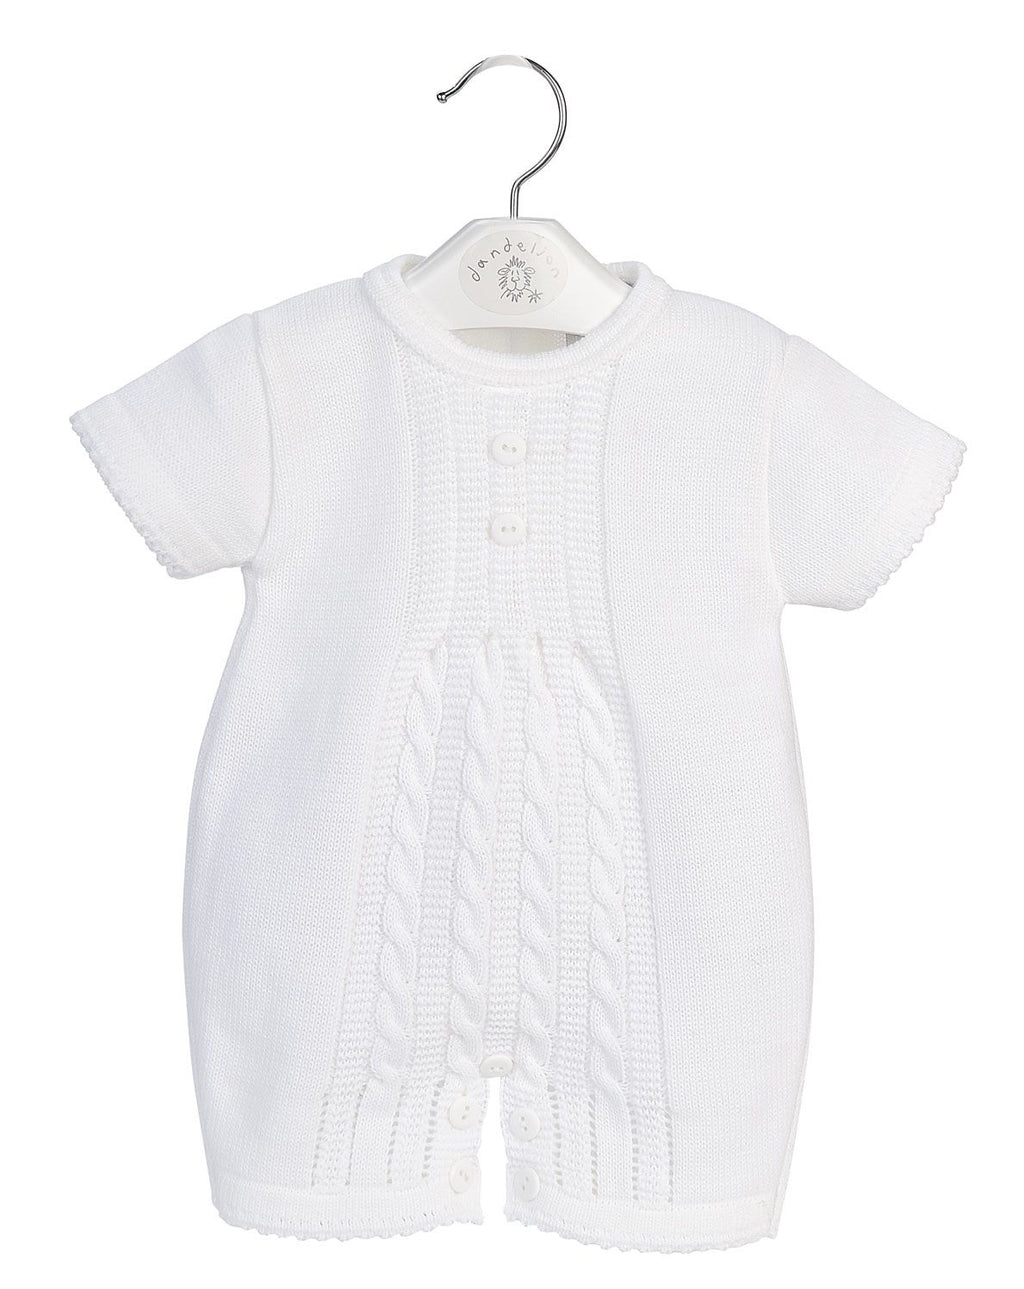 19c10f0753a Millie ralph baby rompers boys girls unisex jpg 1024x1289 Knitted romper